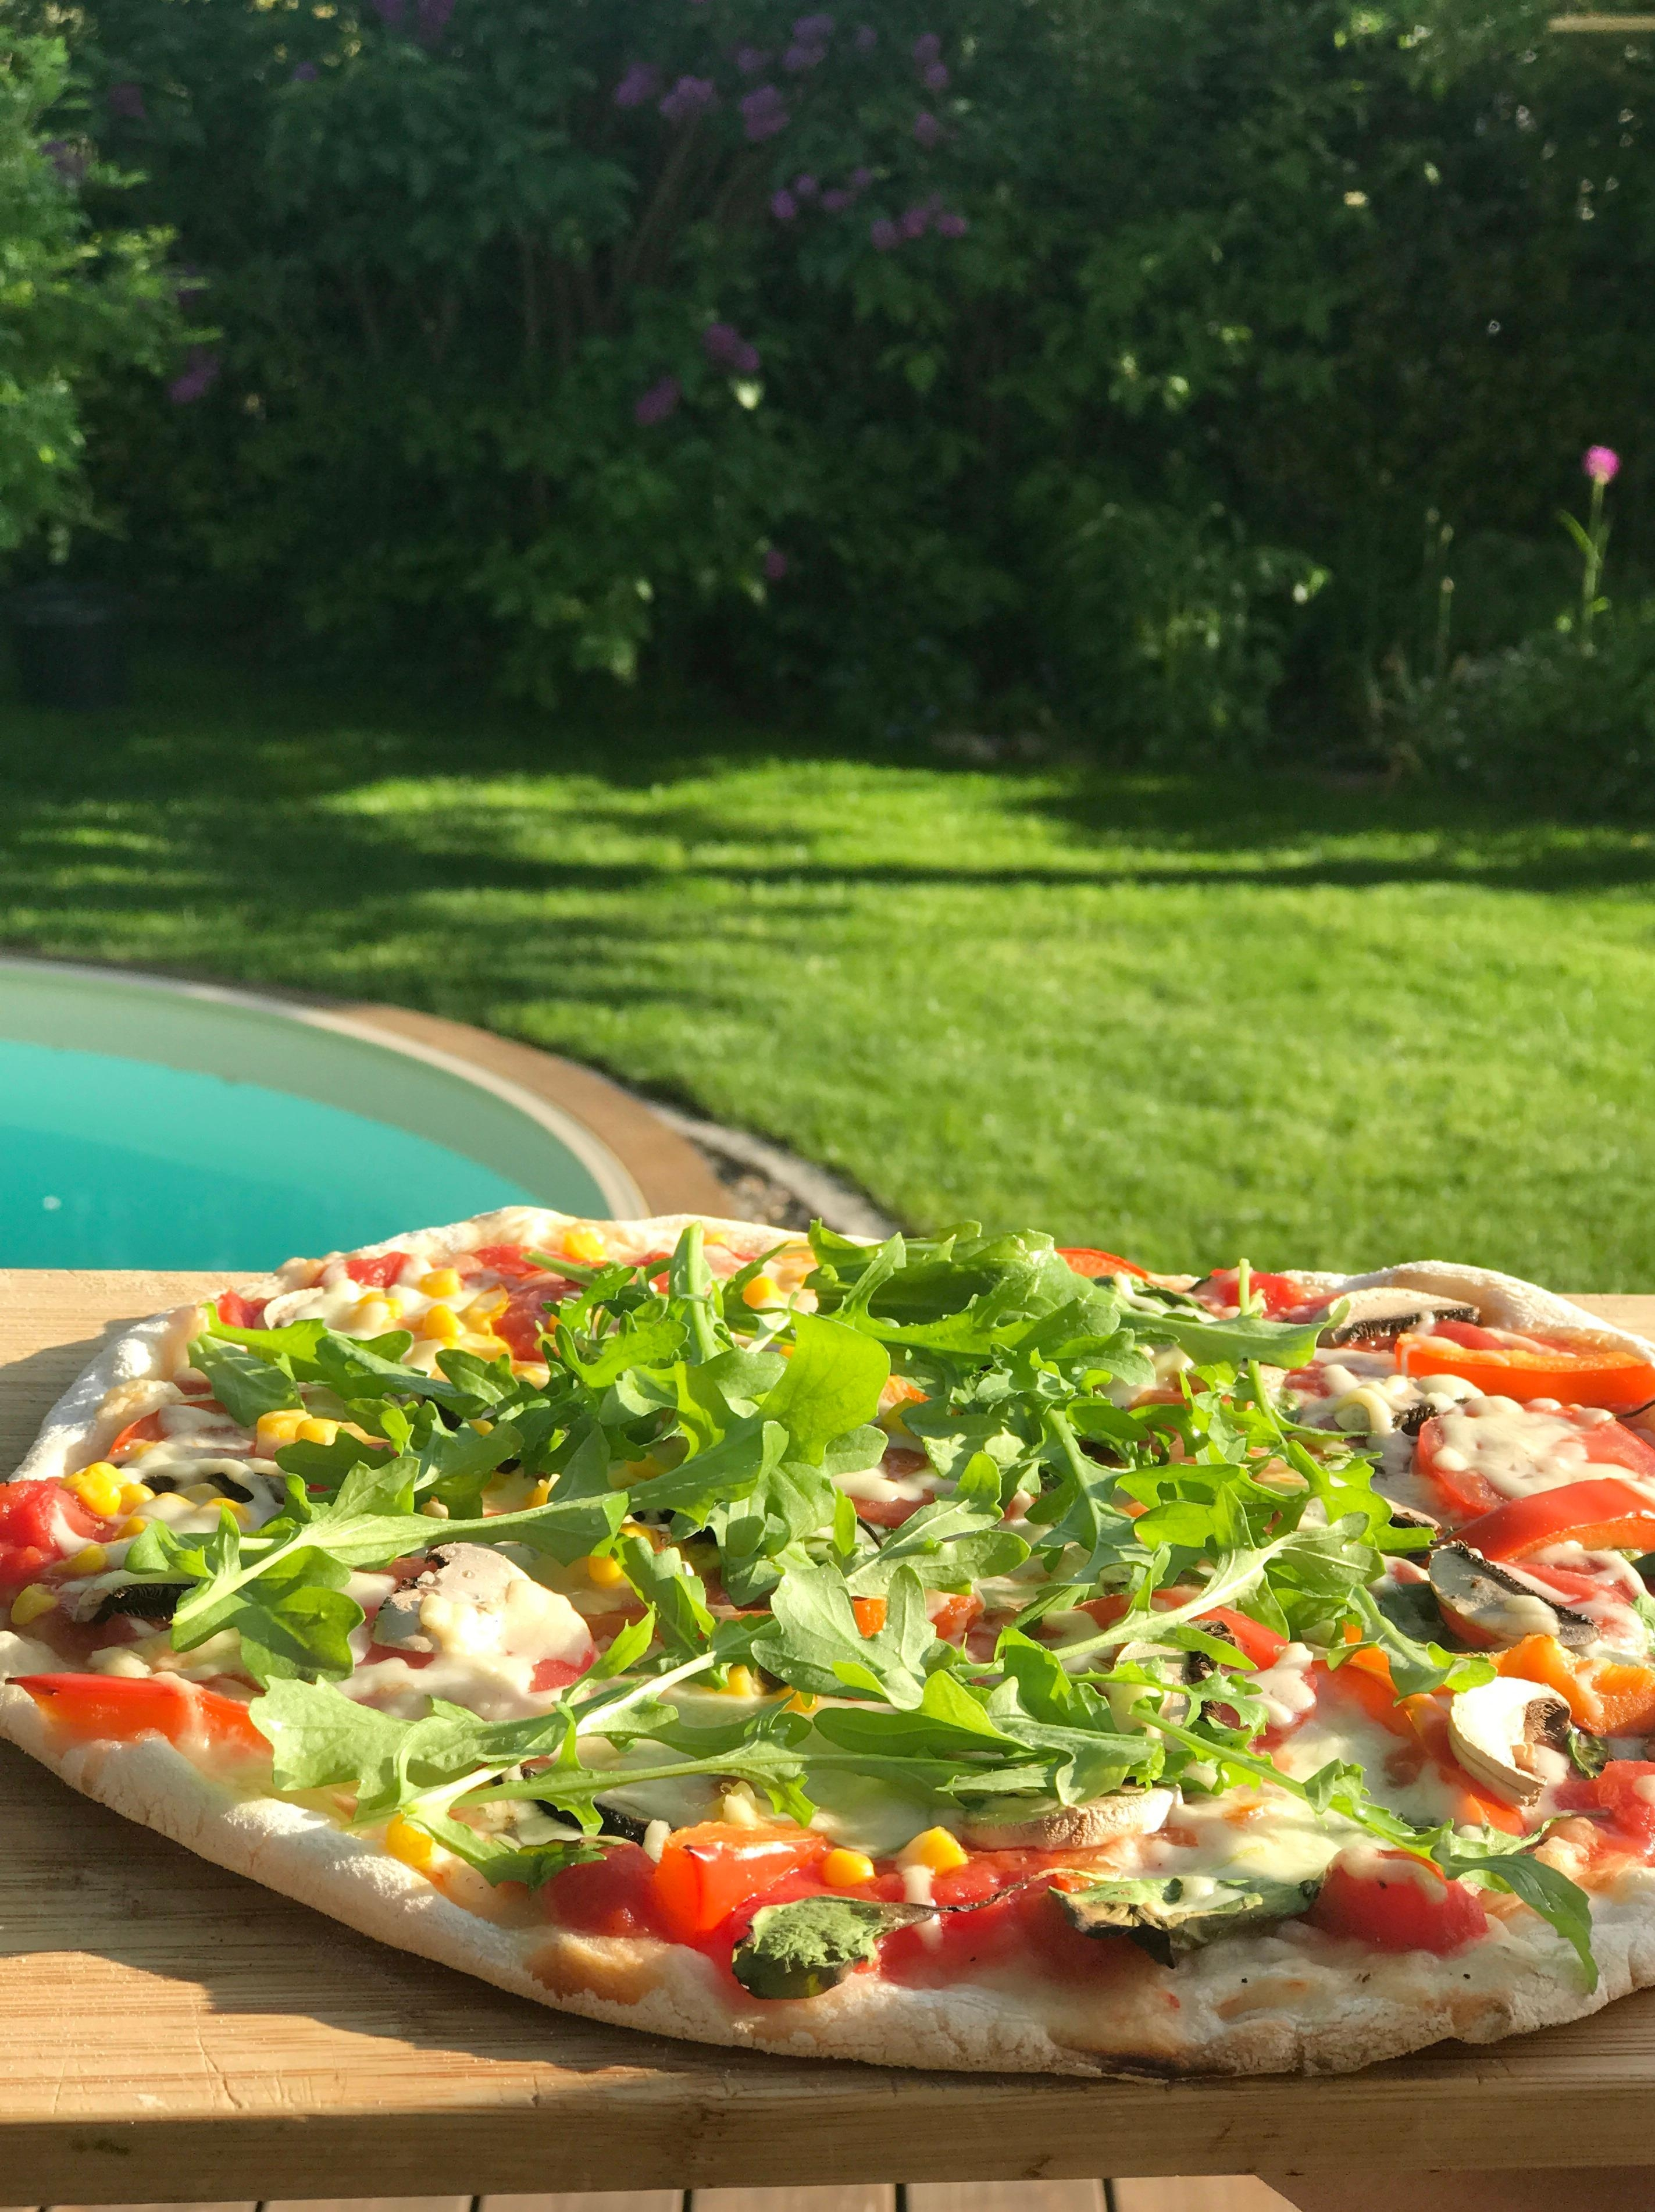 Lieblinggspizza!